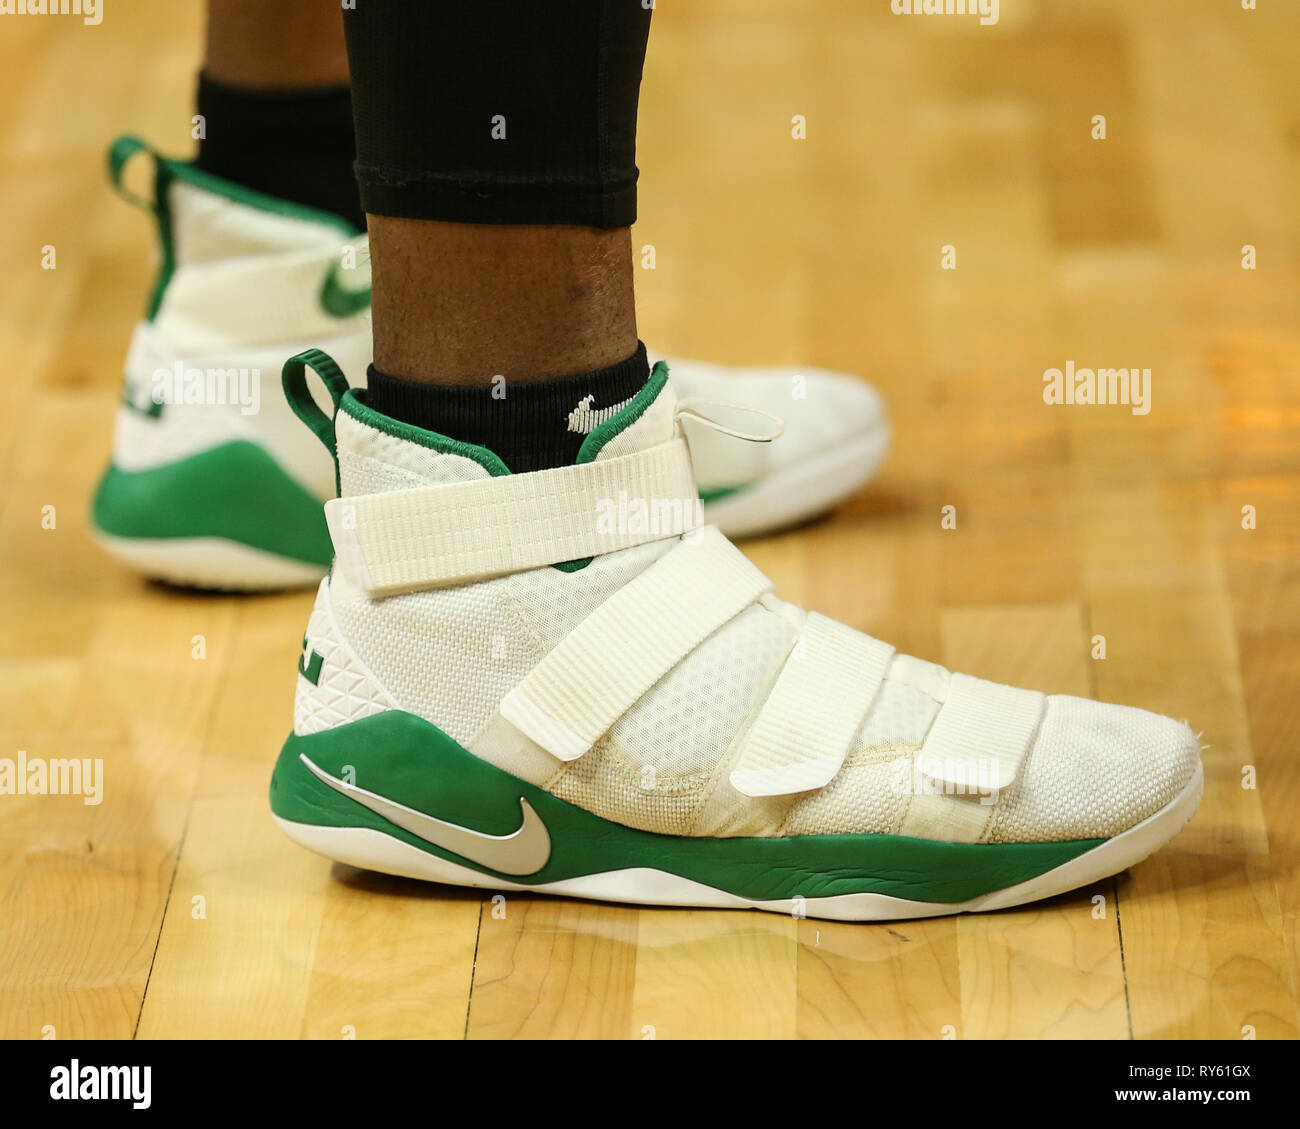 Los Angeles Ca Usa 11th Mar 2019 Nba Kicks Lebron James Shoes In Celtics Green Before The Boston Celtics Vs Los Angeles Clippers At Staples Center On March 11 2019 Photo By